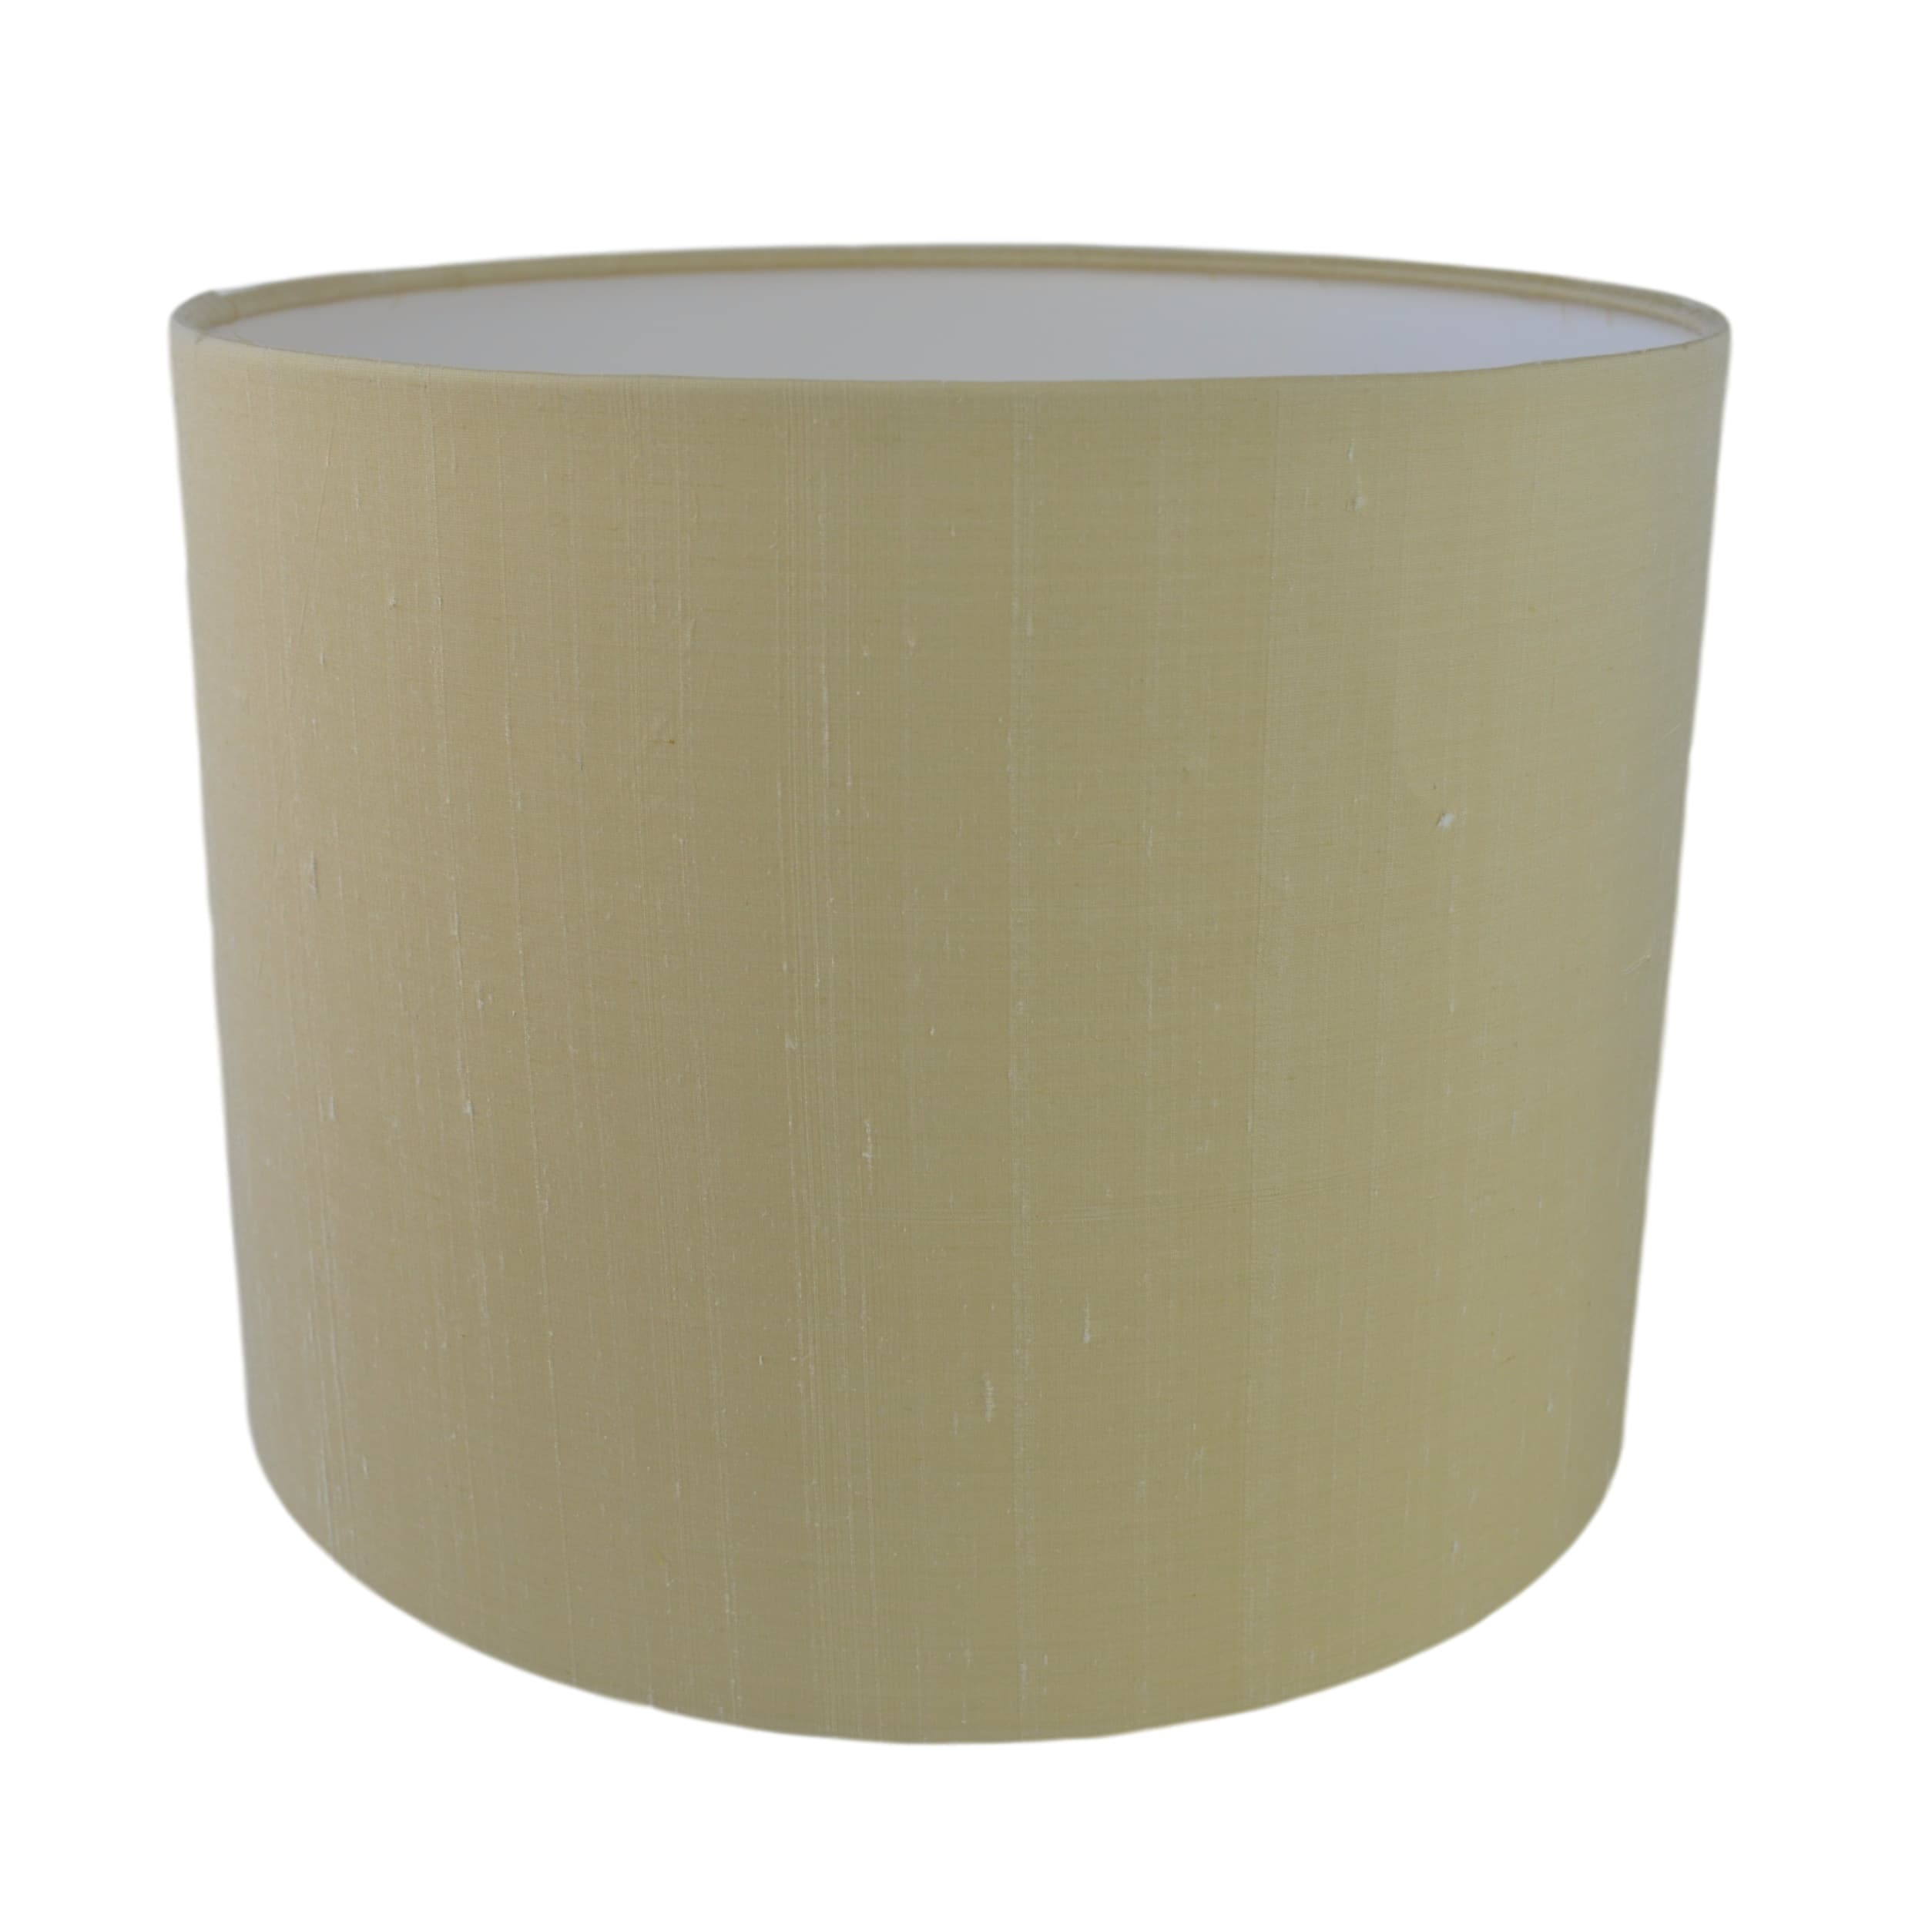 Munro and Kerr customers own material drum lampshade